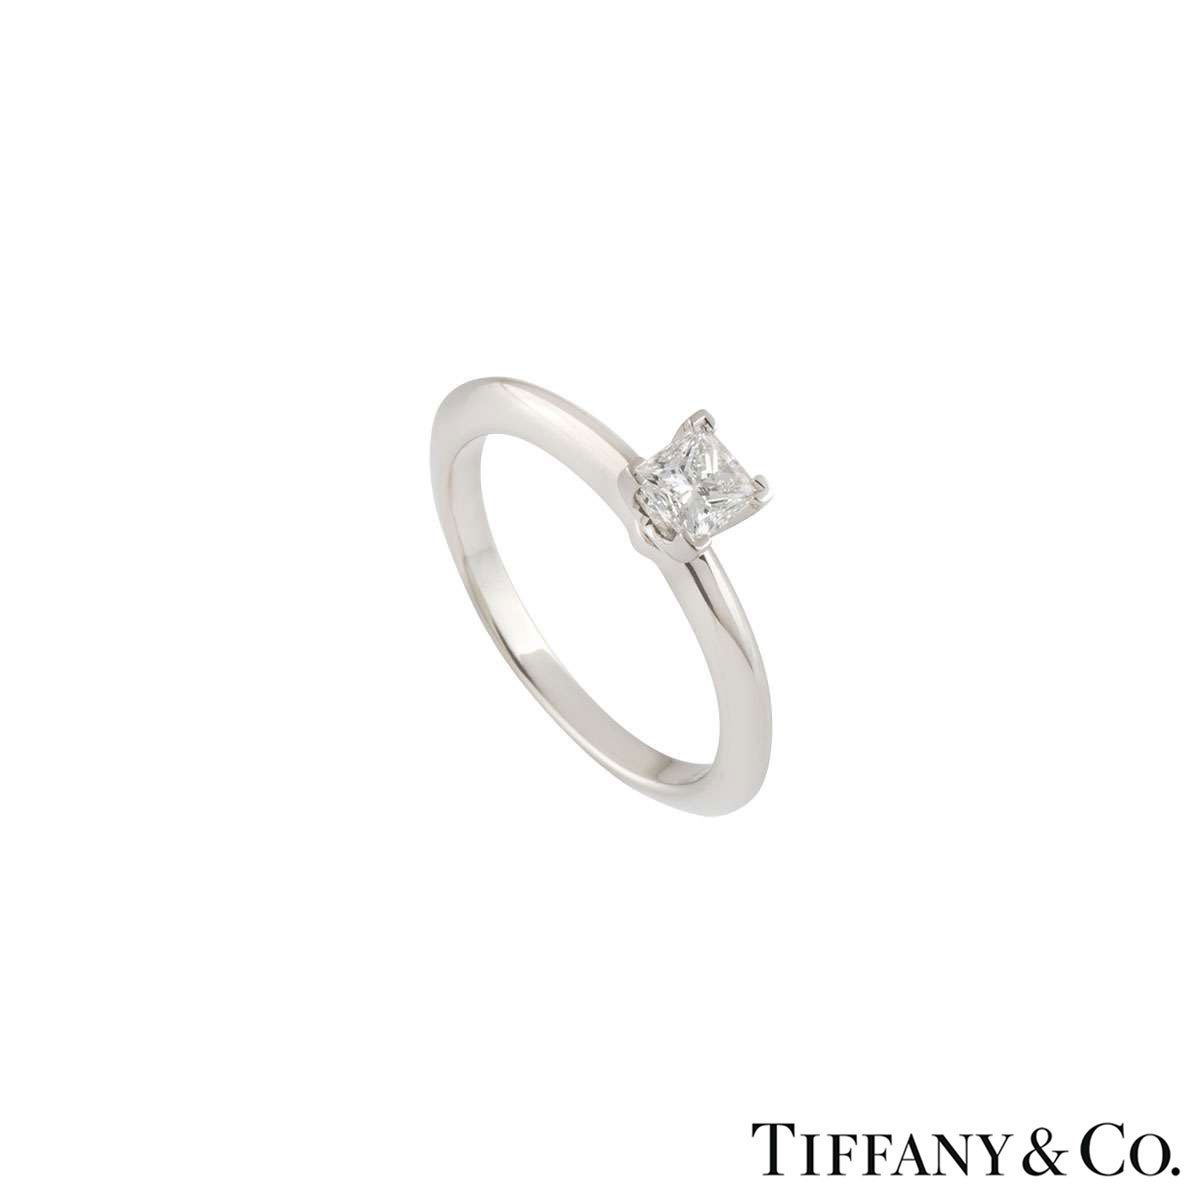 Tiffany & Co. Platinum Princess Cut Diamond Ring 0.34ct E/VVS1